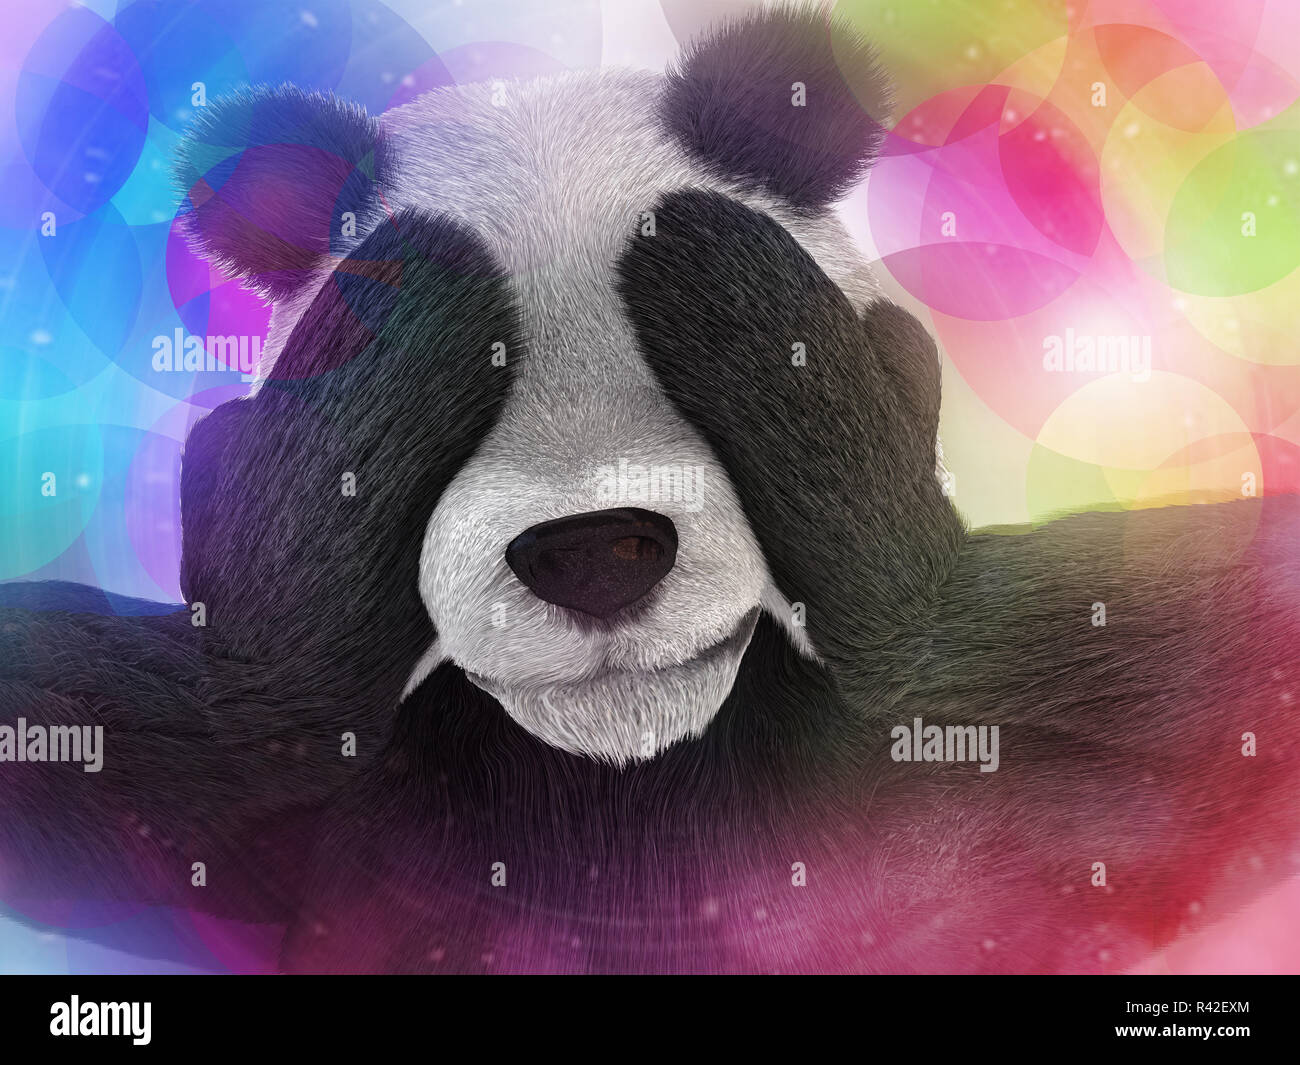 sick character panda bamboo junkie experiencing strong hallucinations and fear closes the muzzle paws. Psychedelic condition of the animal. - Stock Image